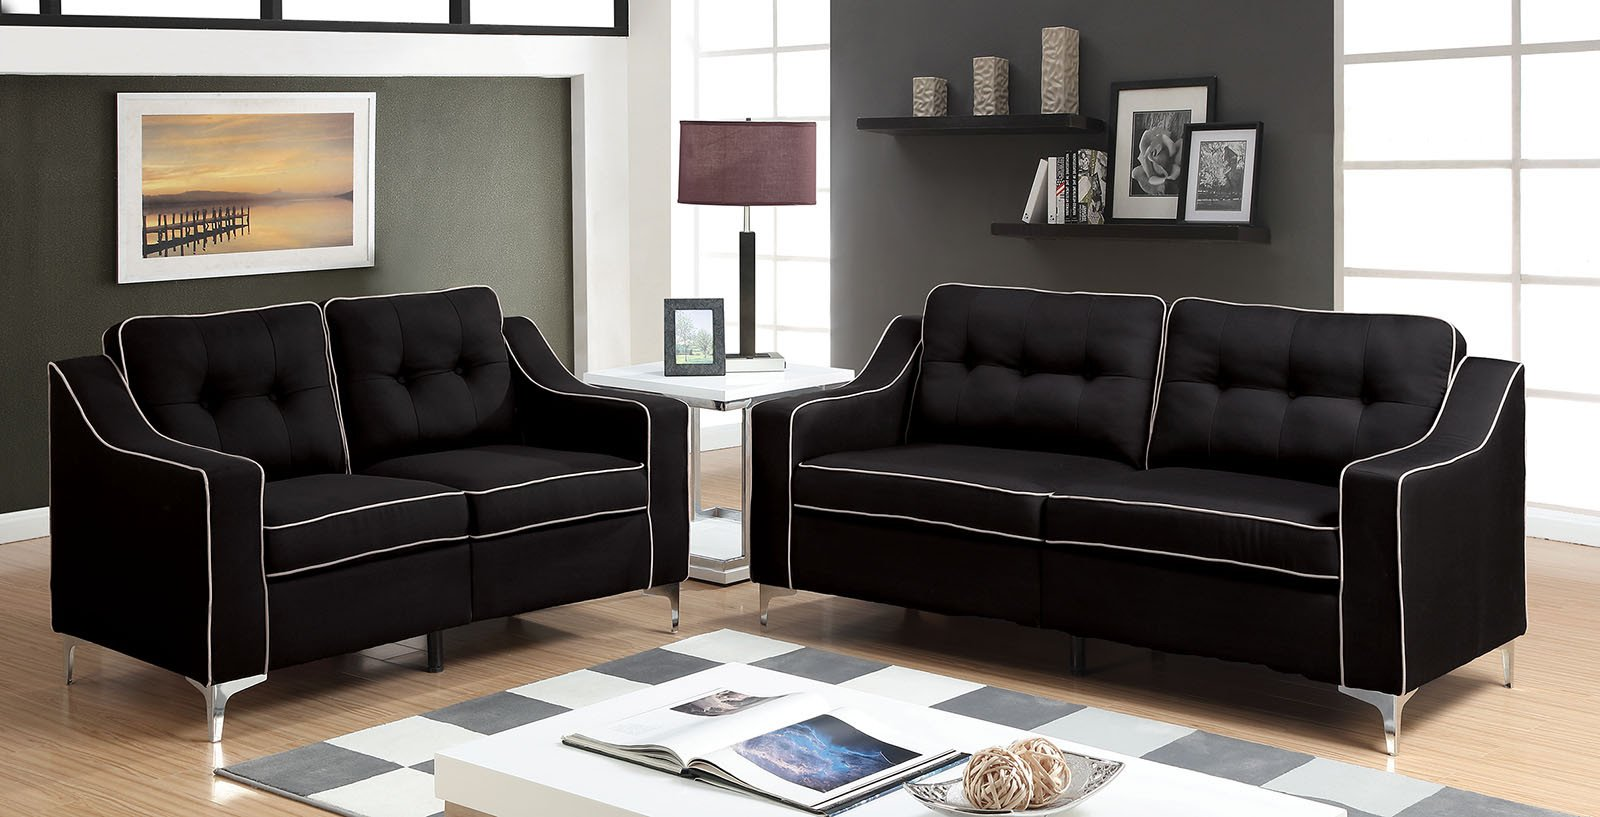 Contemporary Living Room sofas Fresh Glenda Contemporary Style Black Fabric sofa & Loveseat Living Room Set